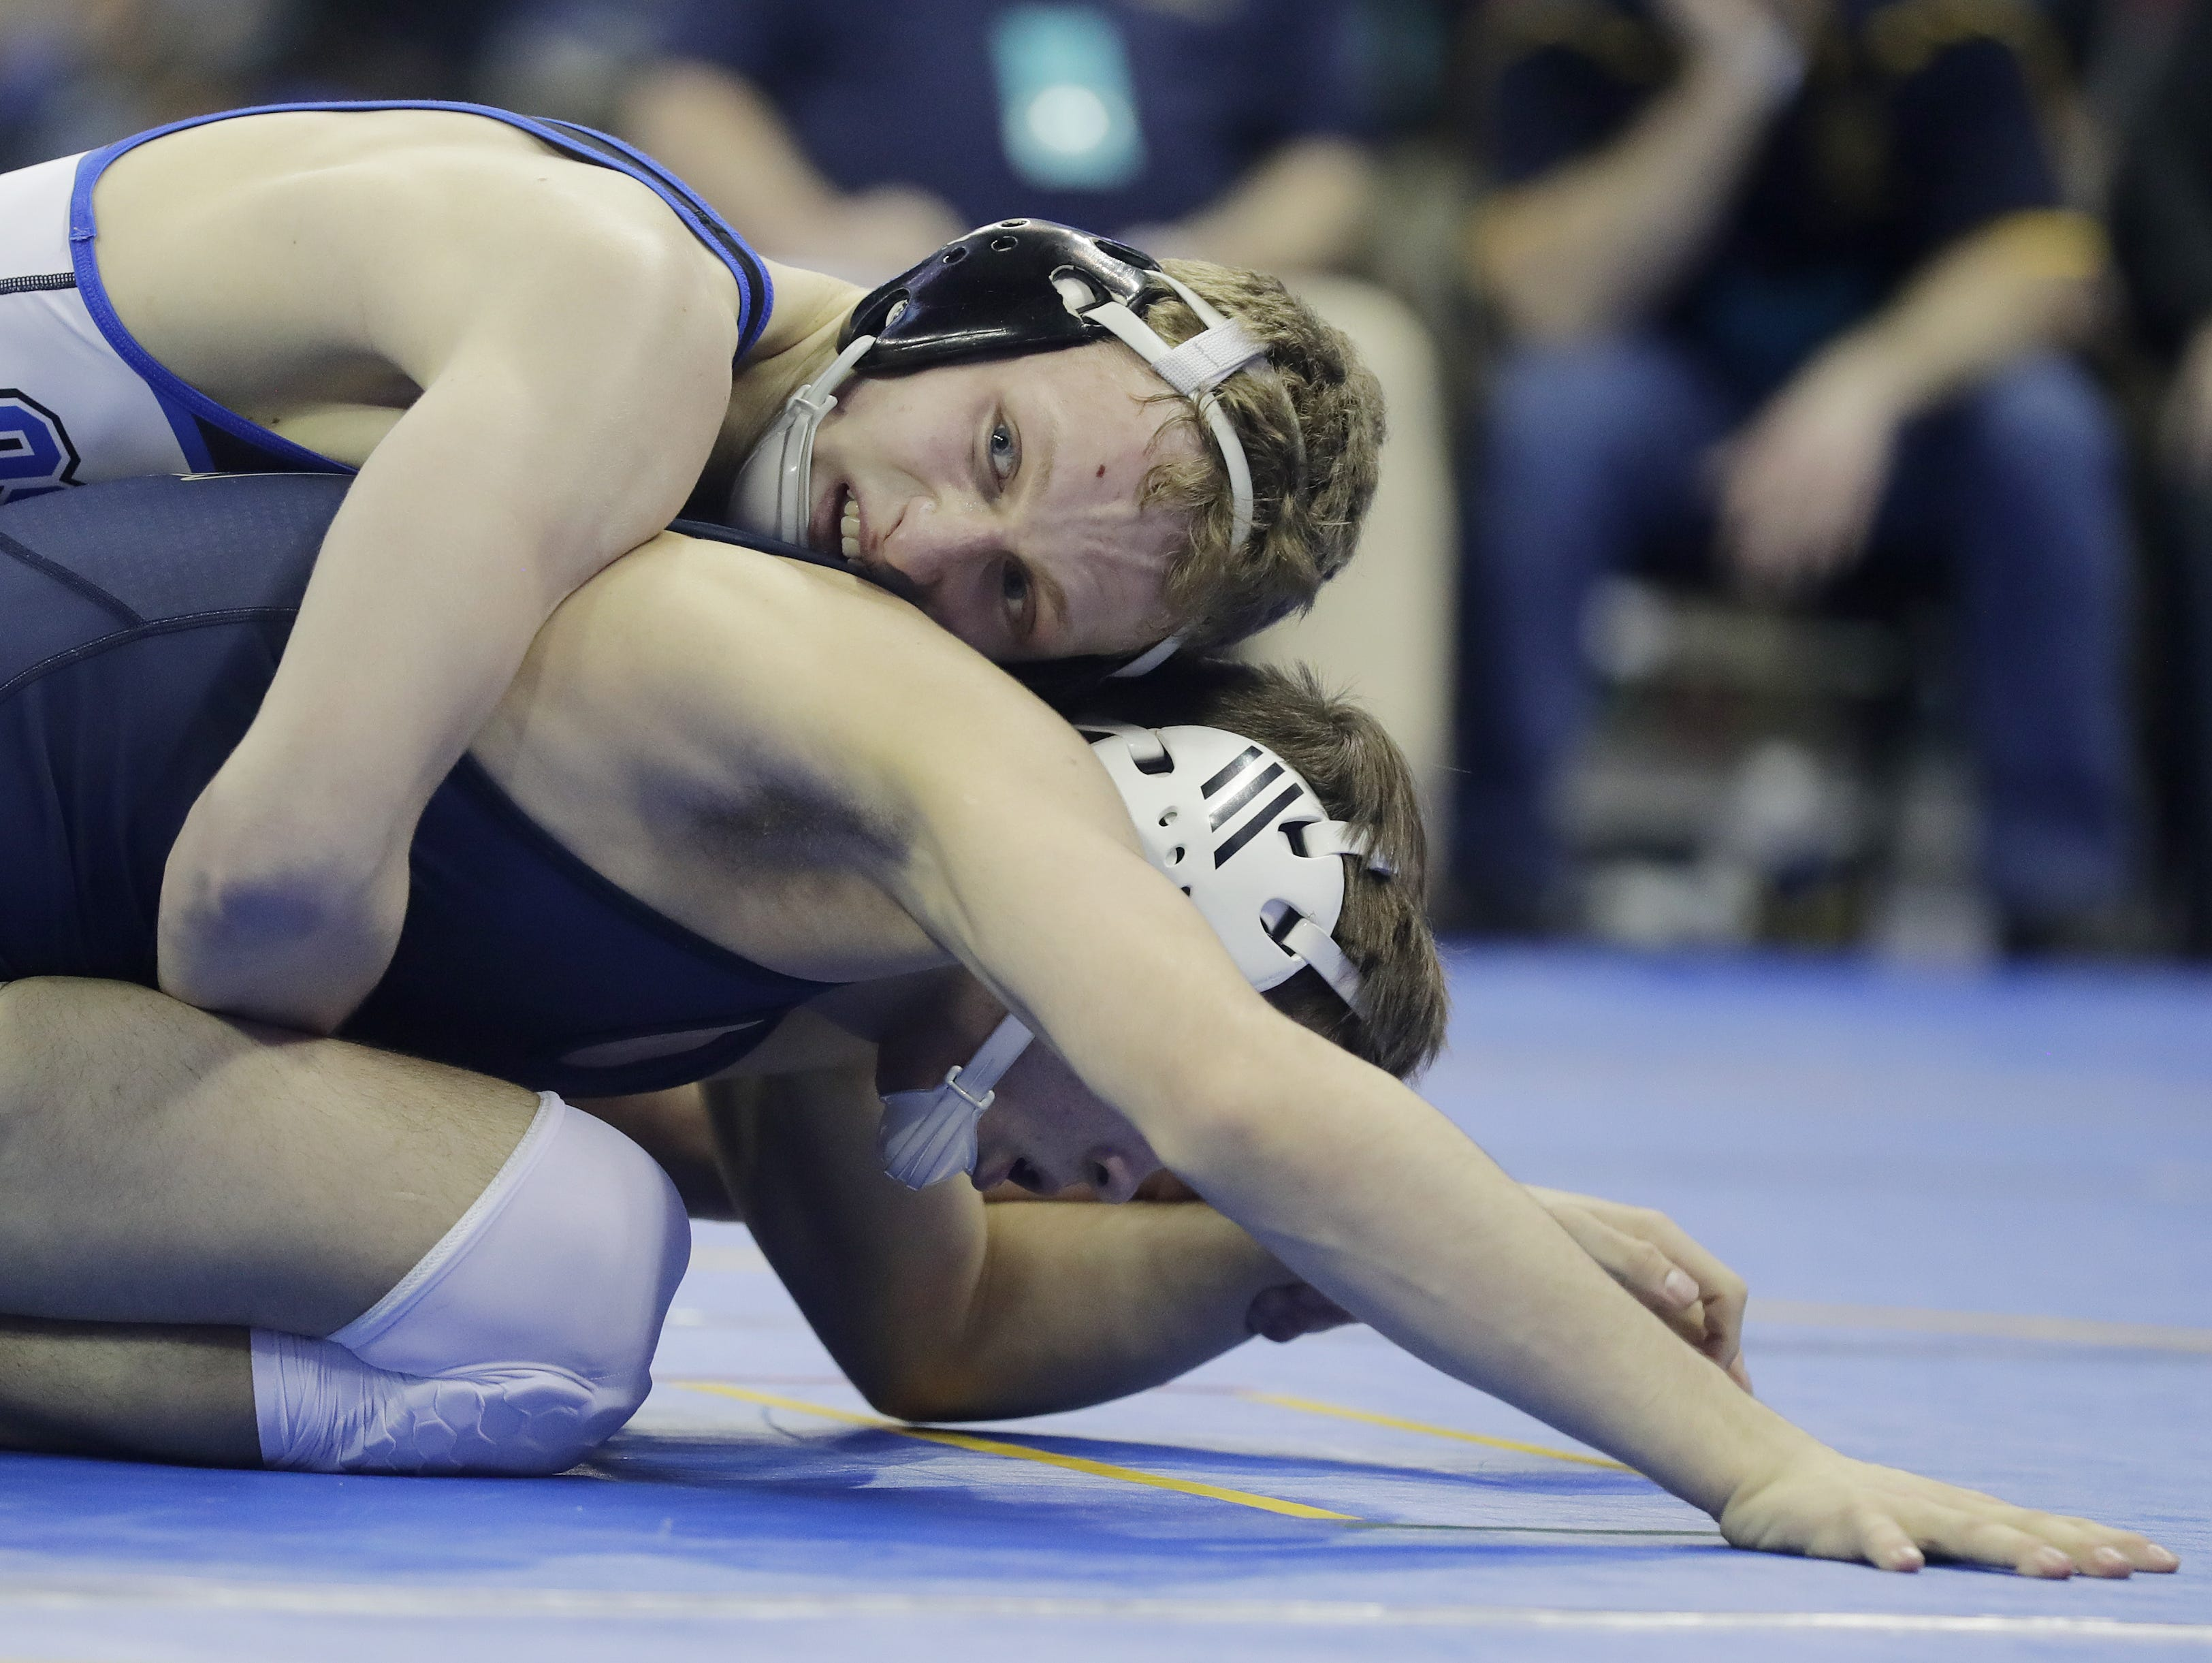 Oshkosh West's Logan Grota wrestles in a Division 1 132-pound preliminary match at the WIAA state individual wrestling tournament at the Kohl Center on Thursday, February 21, 2019 in Madison, Wis. Adam Wesley/USA TODAY NETWORK-Wisconsin